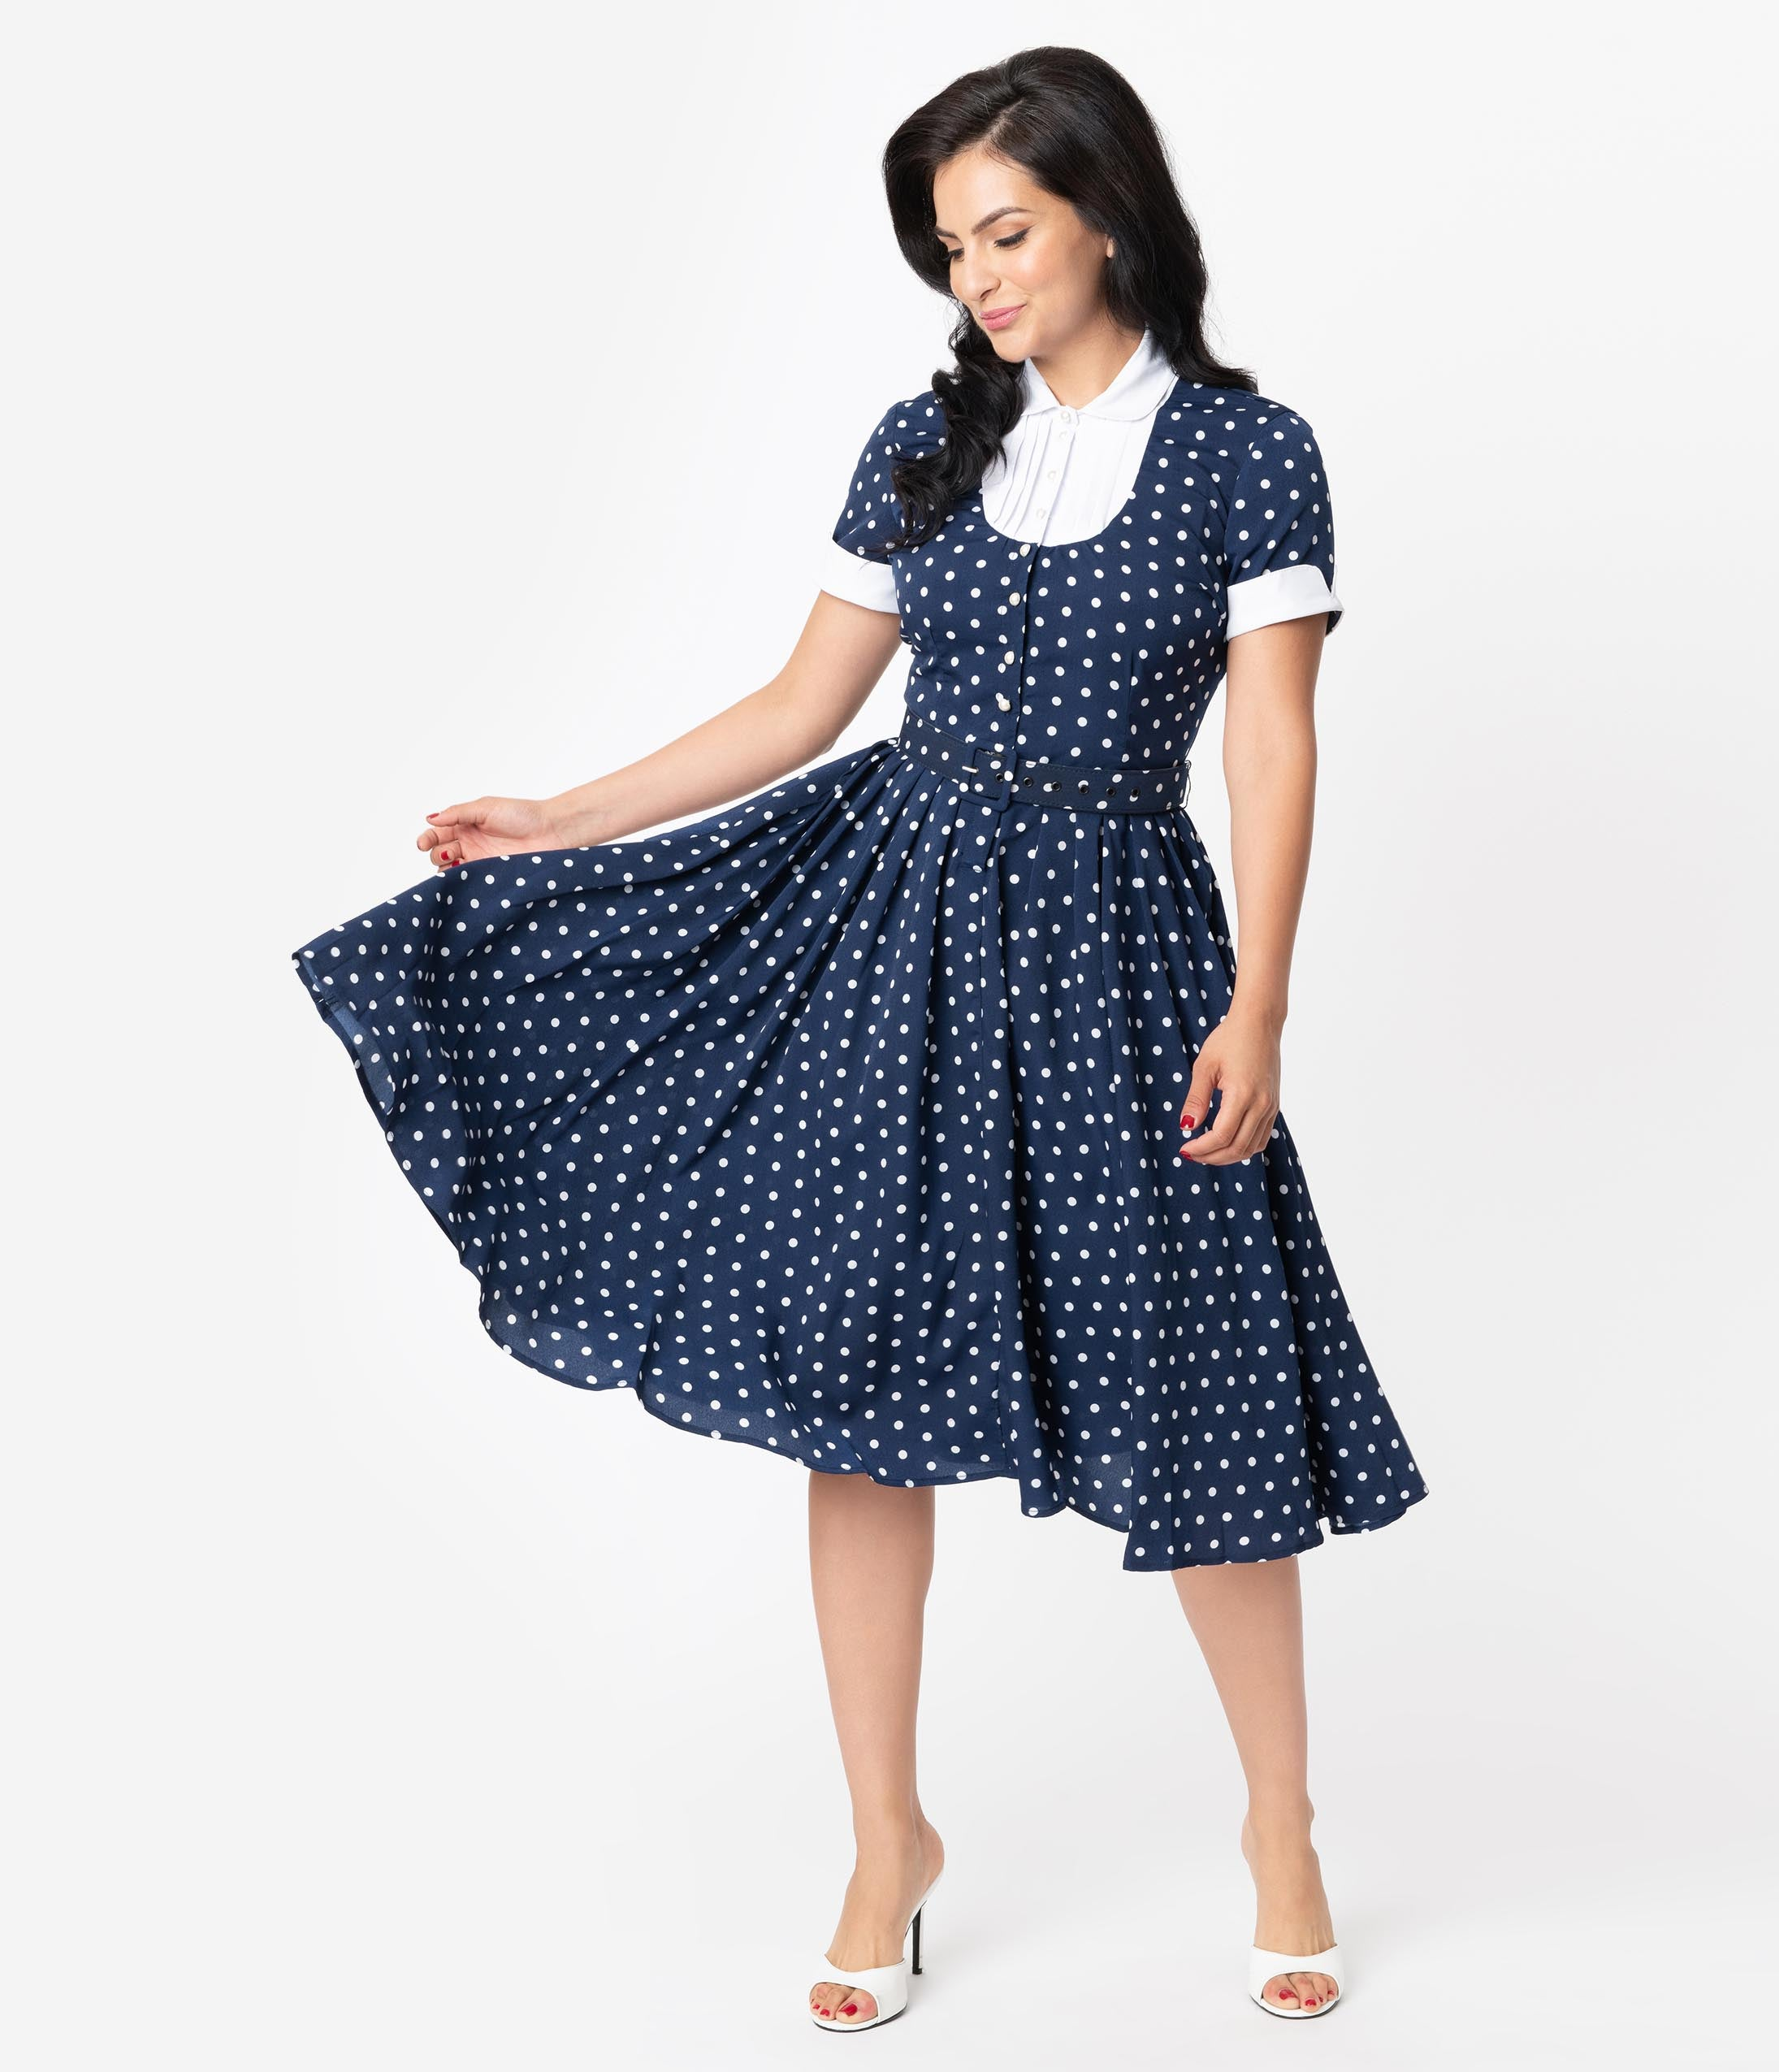 1950s Dresses, 50s Dresses | 1950s Style Dresses I Love Lucy X Unique Vintage Navy  White Polka Dot Ricardo Swing Dress $98.00 AT vintagedancer.com